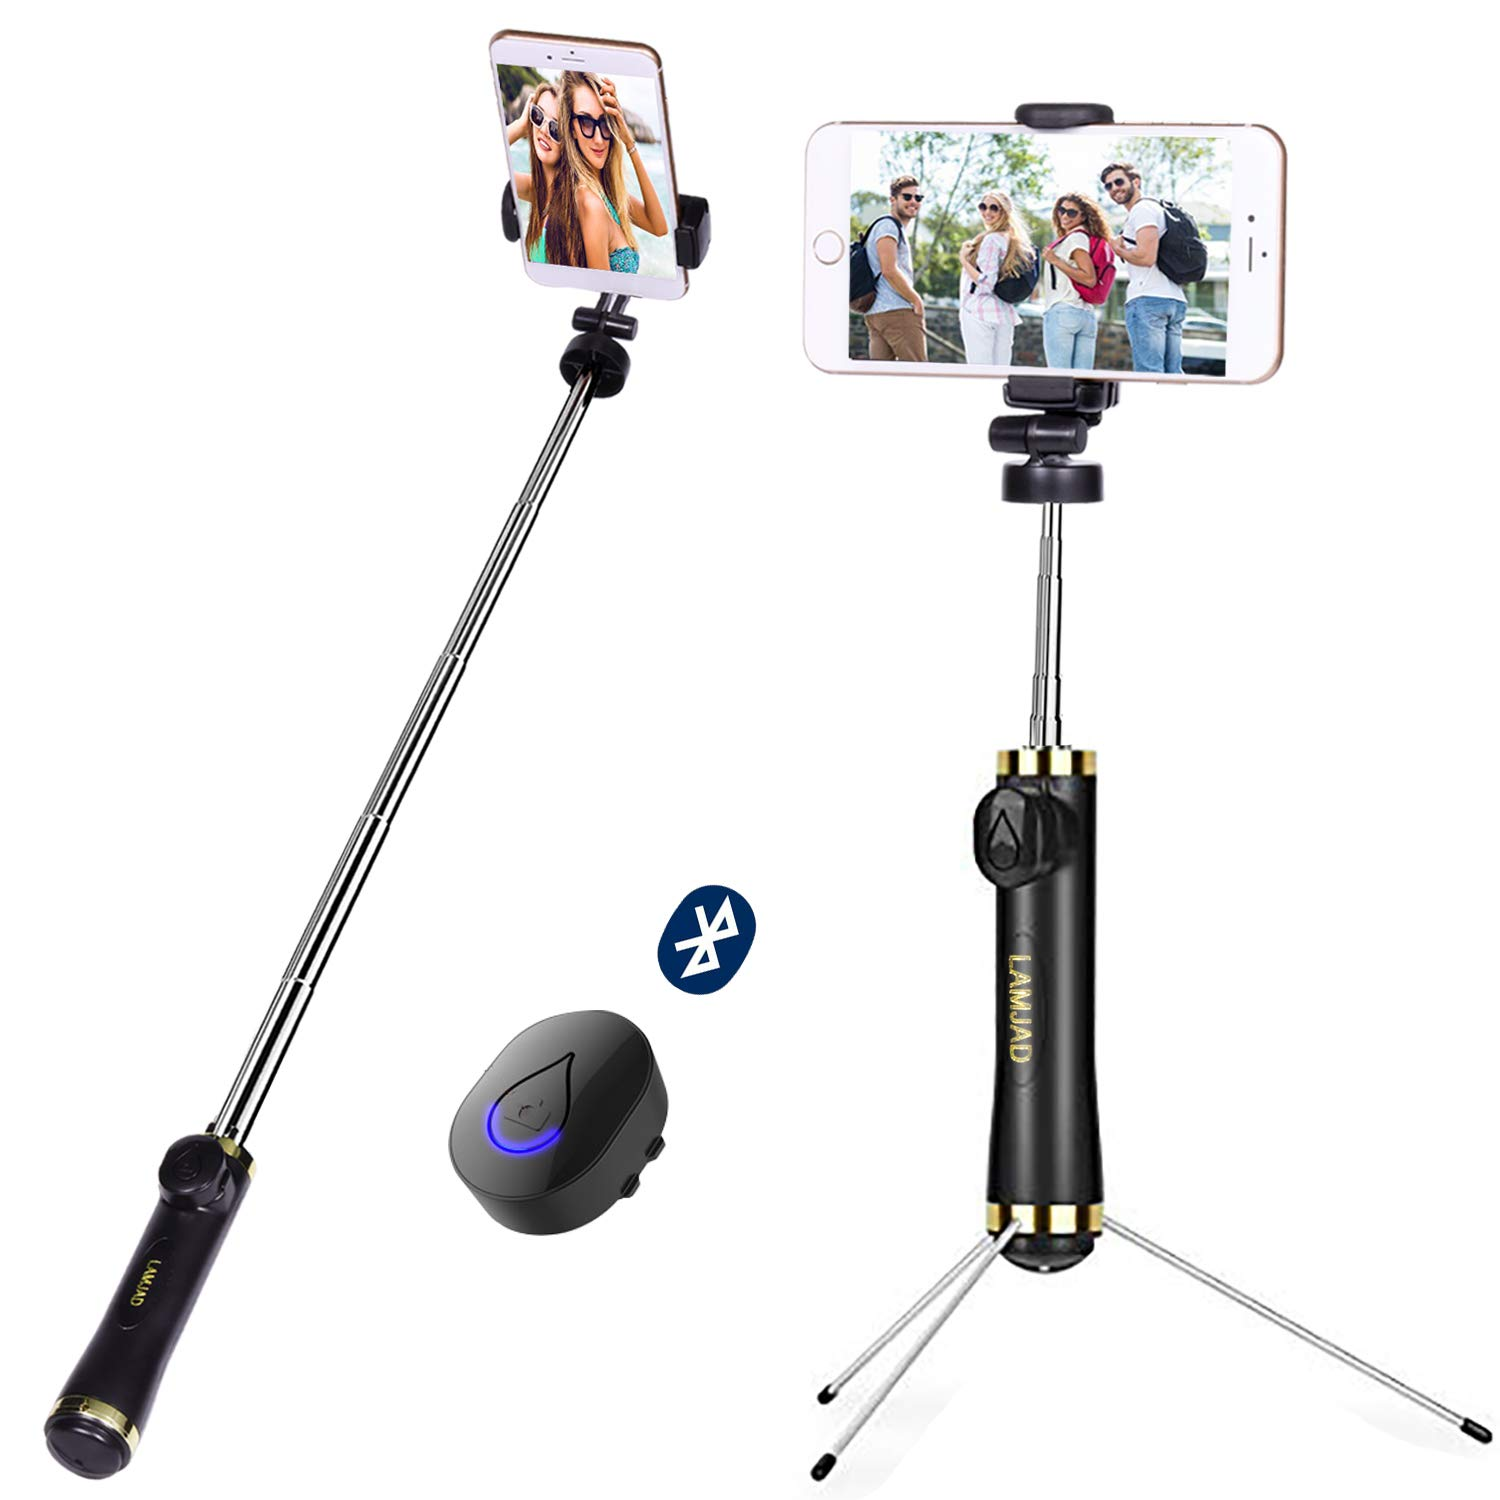 Selfie Stick, LAMJAD Extendable Selfie Stick Tripod with Wireless Remote and Tripod Stand Selfie Stick for iPhone 11 XS XSmax XR X 8 8P 7 7P 6s 6 5, Galaxy S9 8 7 6 Note, Android Smartphone